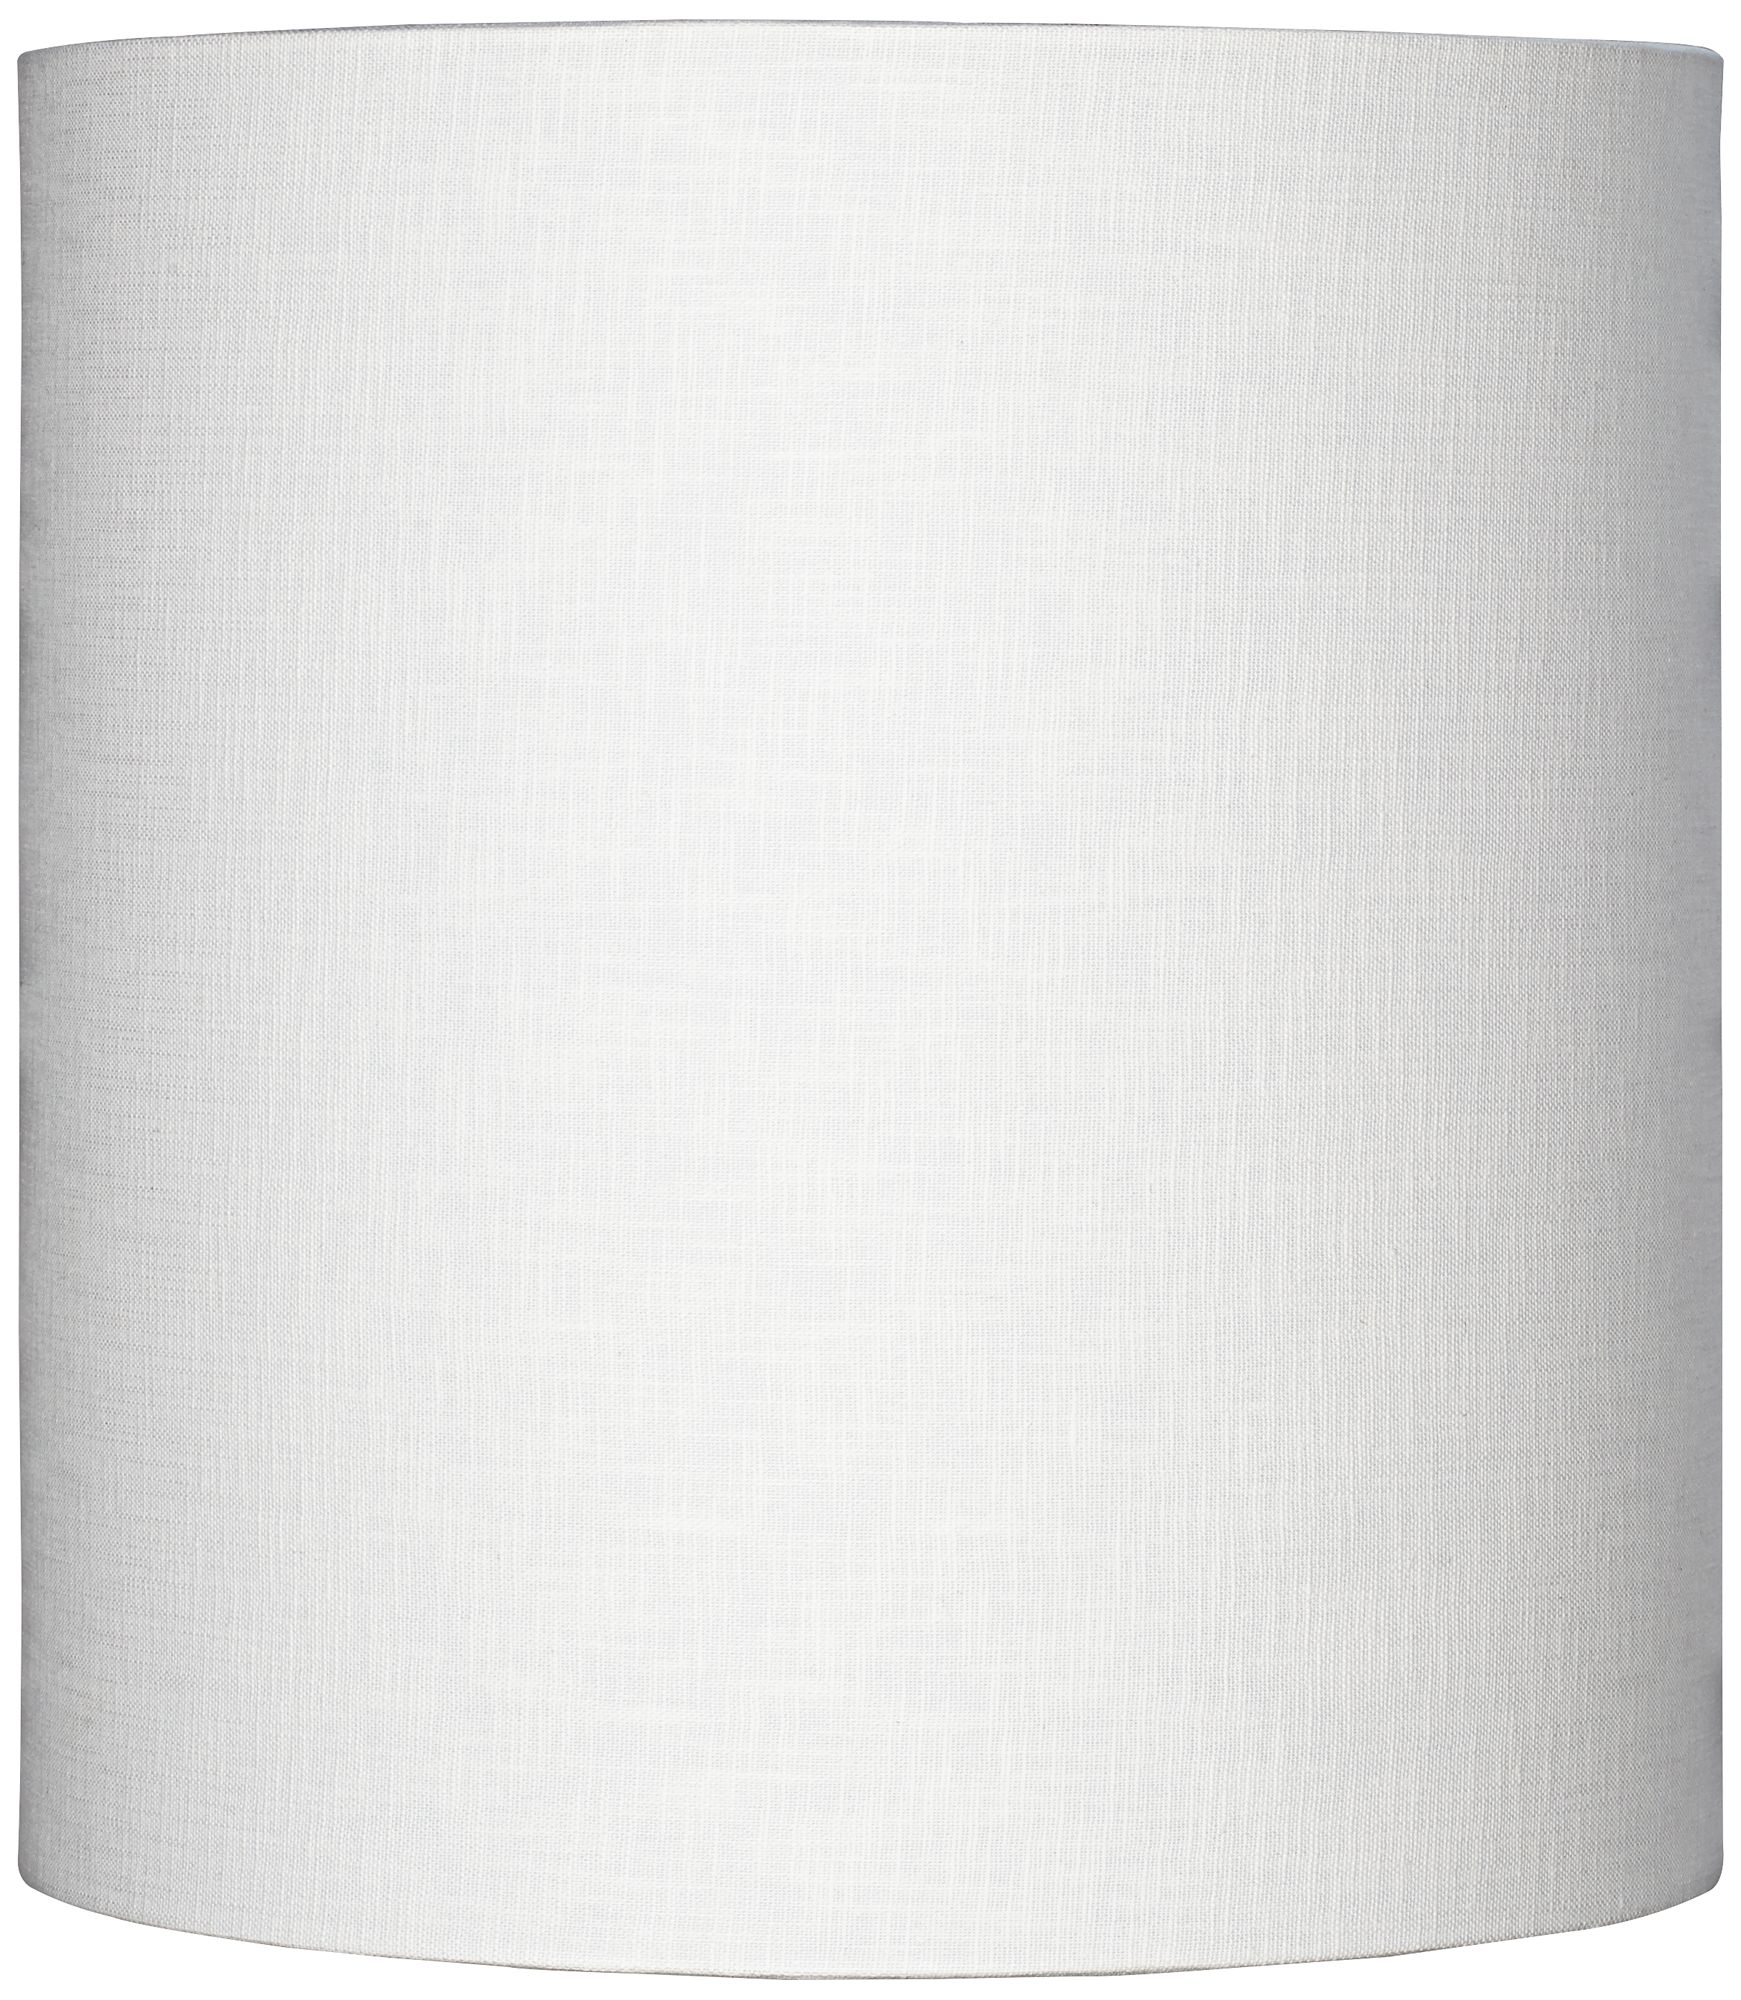 High Quality White Tall Linen Drum Shade 14x14x15 (Spider)